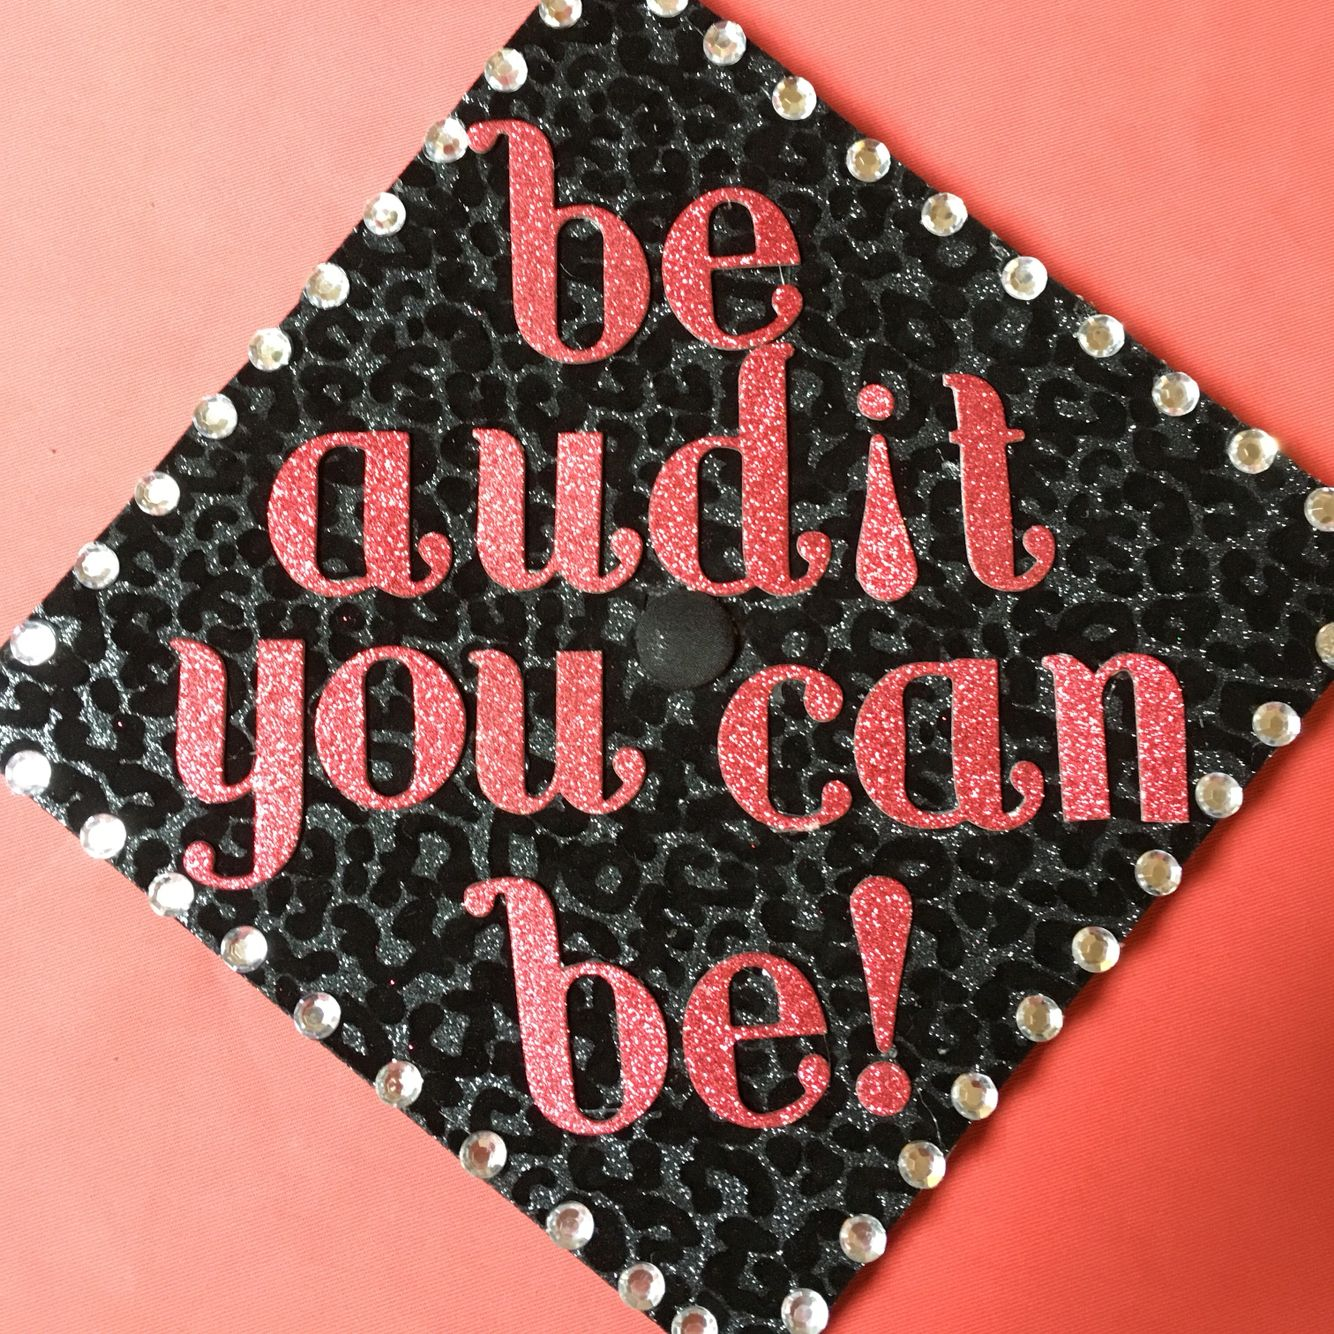 My accounting themed grad cap hats off pinterest for Accounting graduation cap decoration